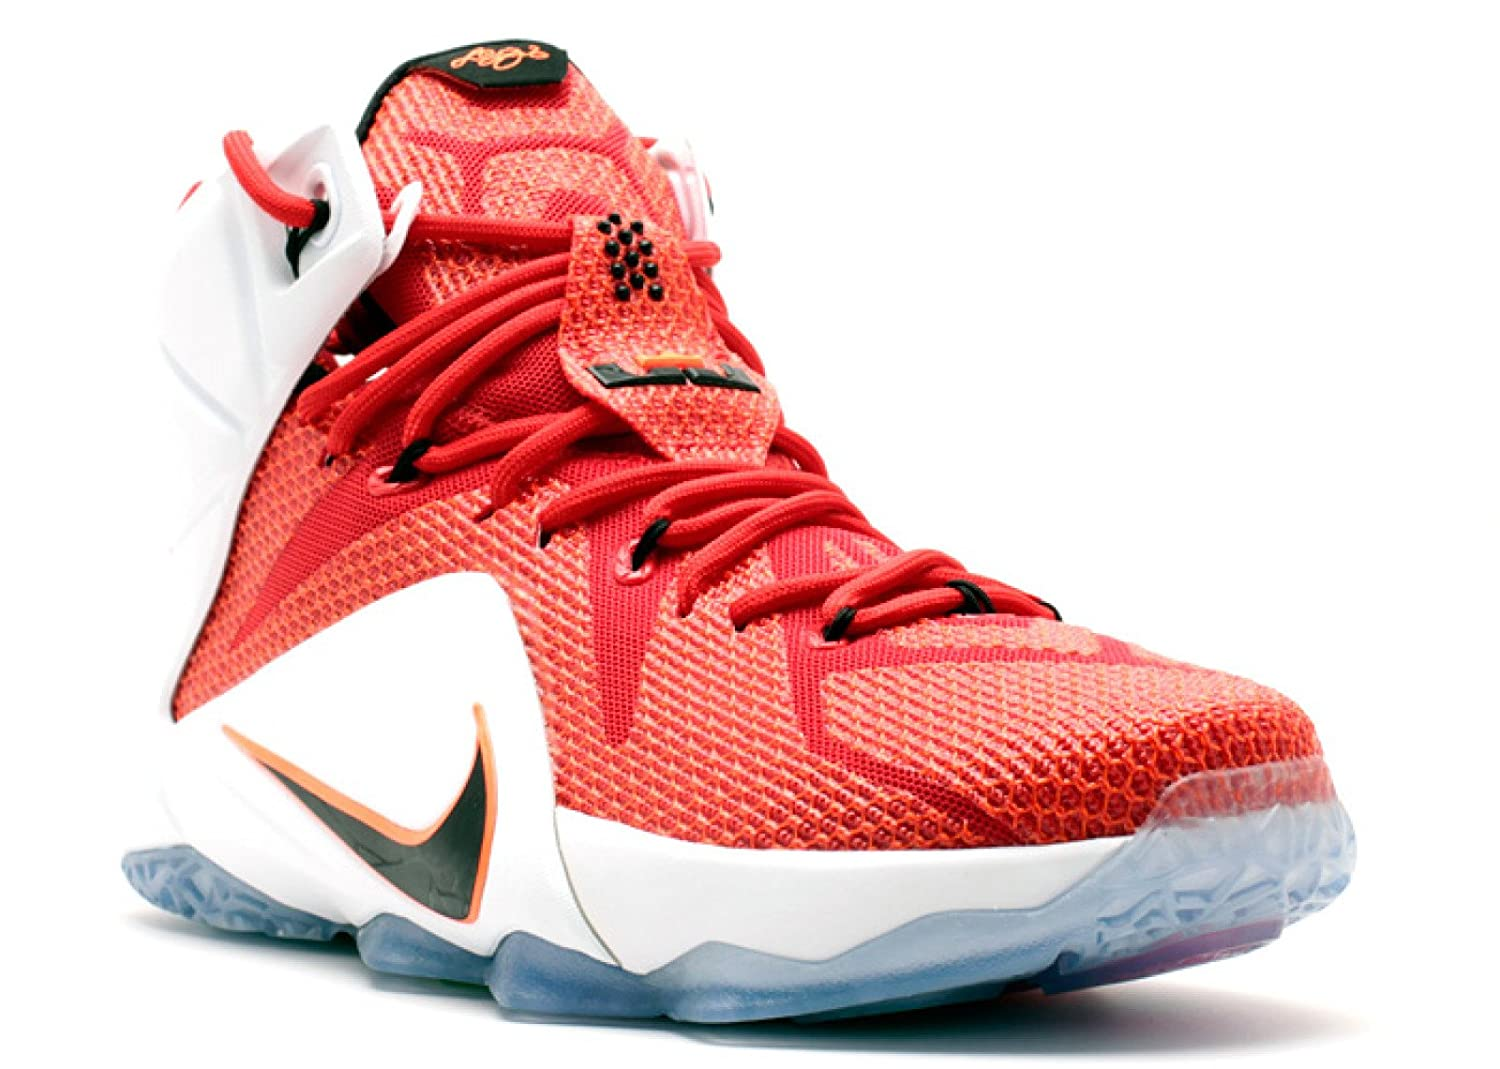 newest 27ea1 2f3ca Amazon.com   Nike Lebron XII Heart Of A Lion Men s Shoes University Red  Black-White-Hyper Crimson 684593-601 (10 D(M) US)   Basketball